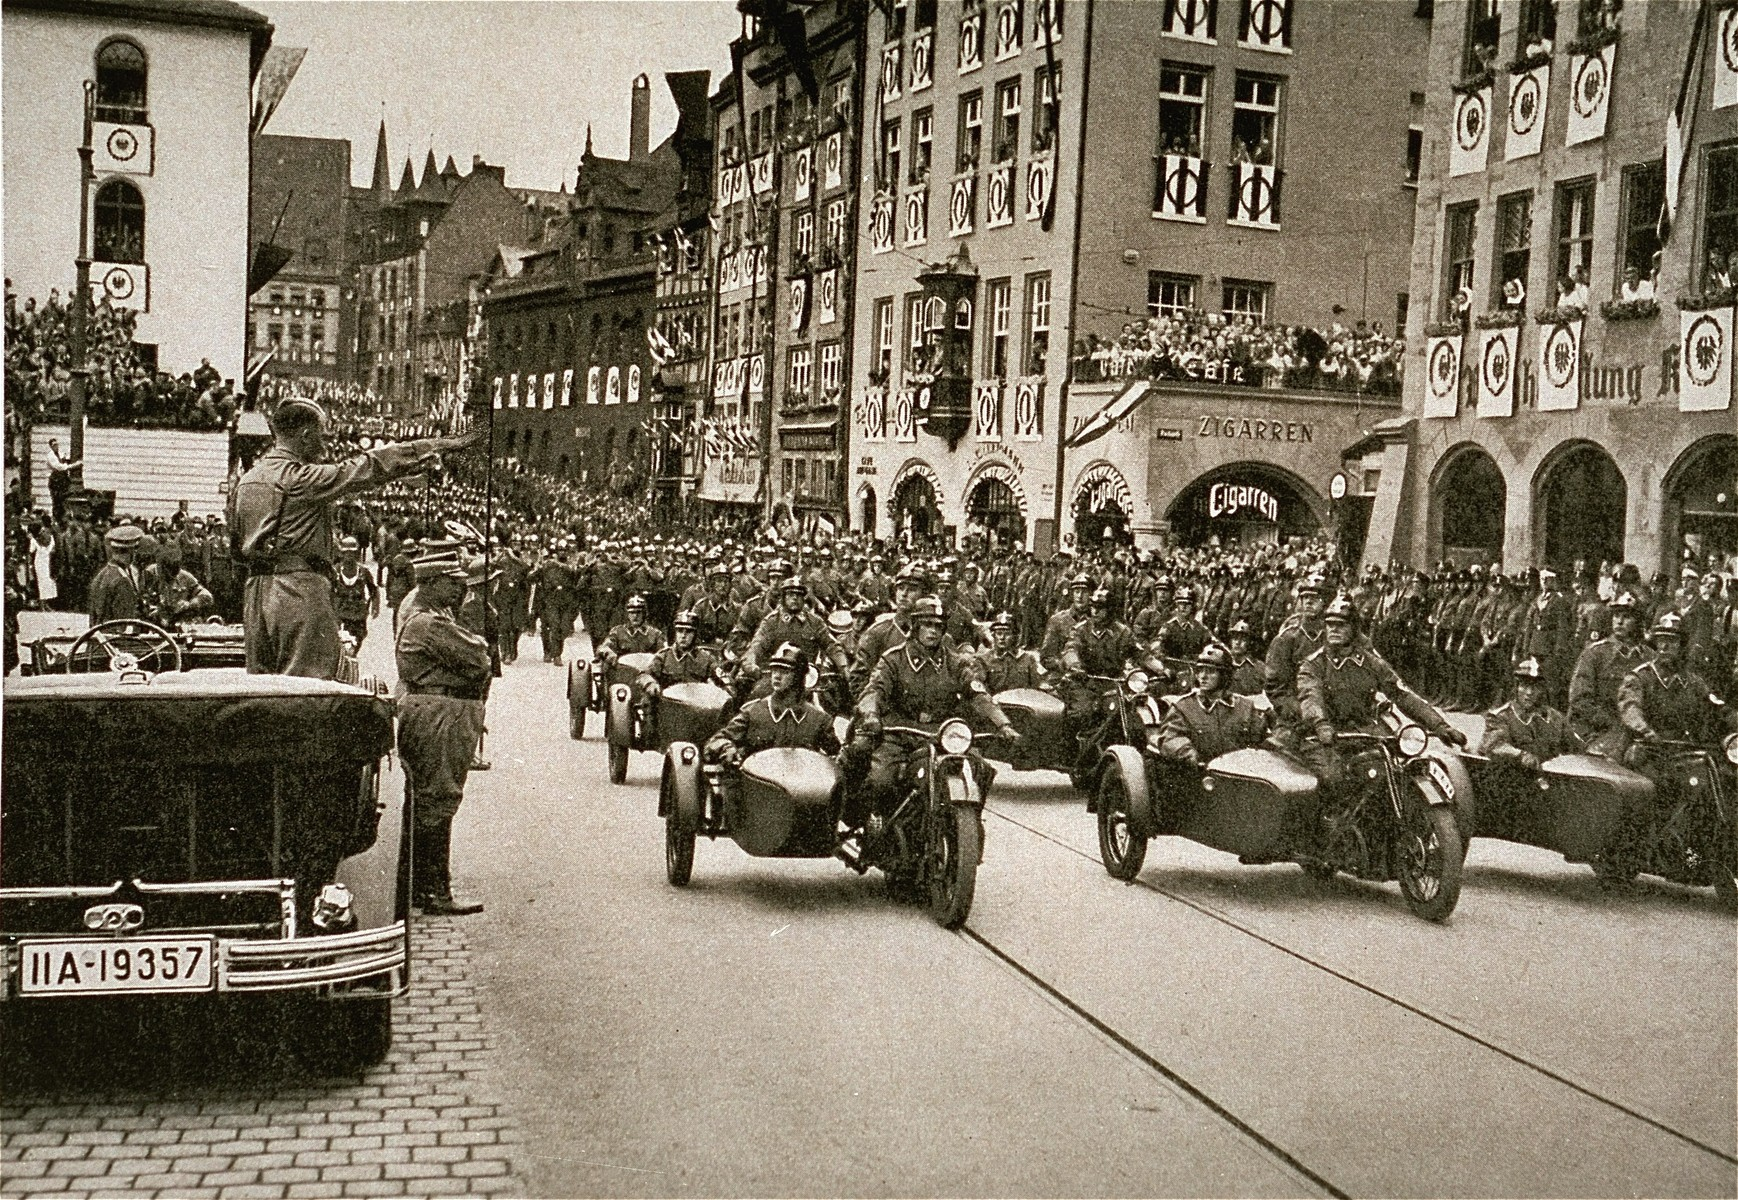 Adolf Hitler salutes a motorized SA unit from his car during a Reichsparteitag (Reich Party Day) parade.  Hermann Goering stands in front of Hitler's car.